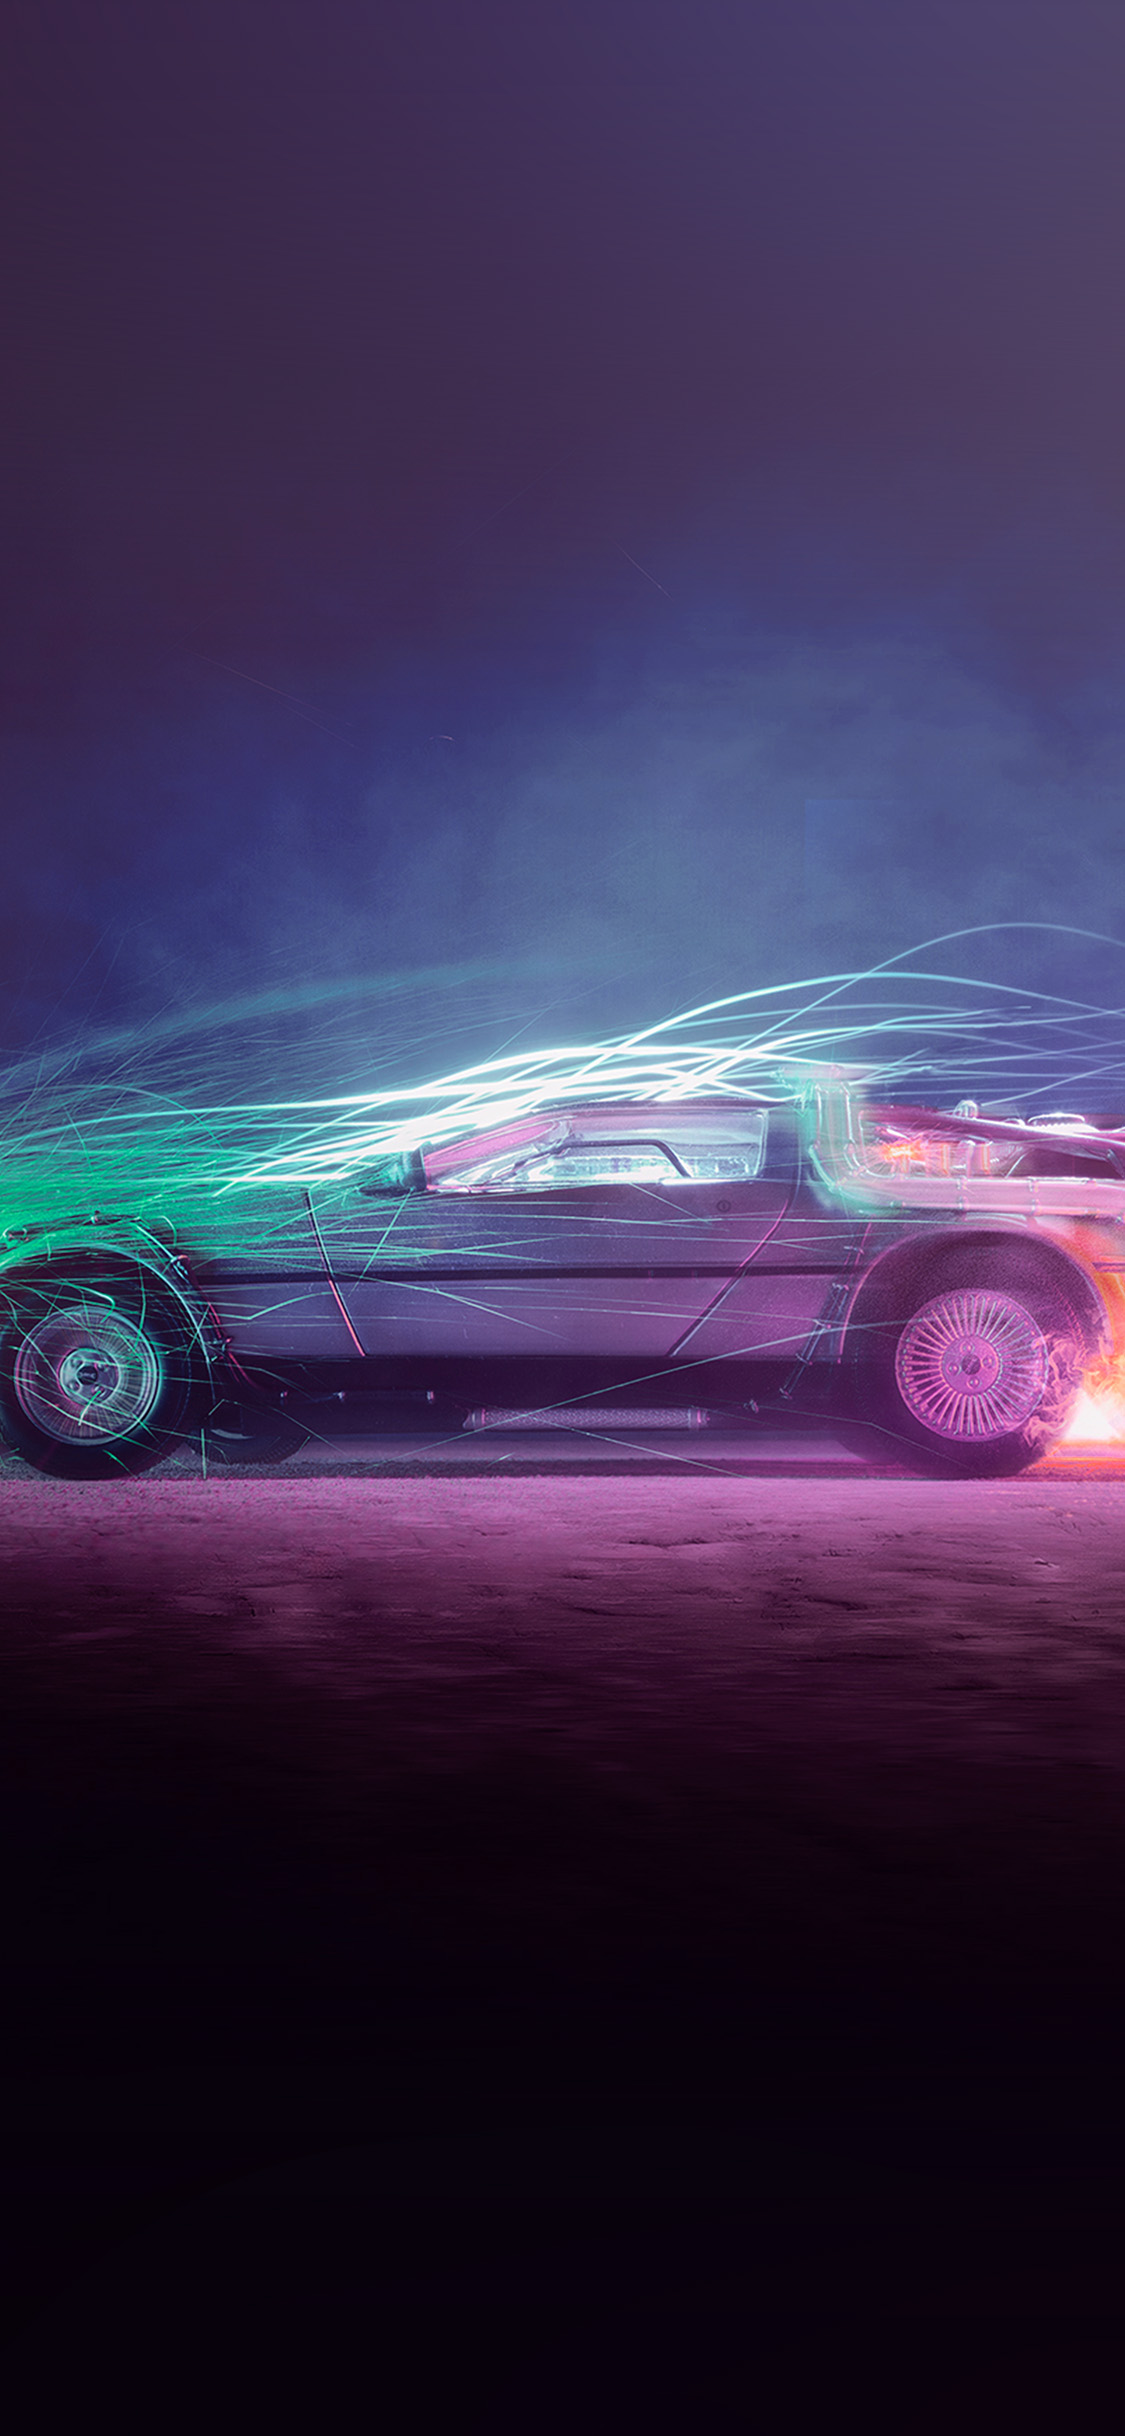 iPhonexpapers.com-Apple-iPhone-wallpaper-bh85-backtothefuture-car-film-art-night-cool